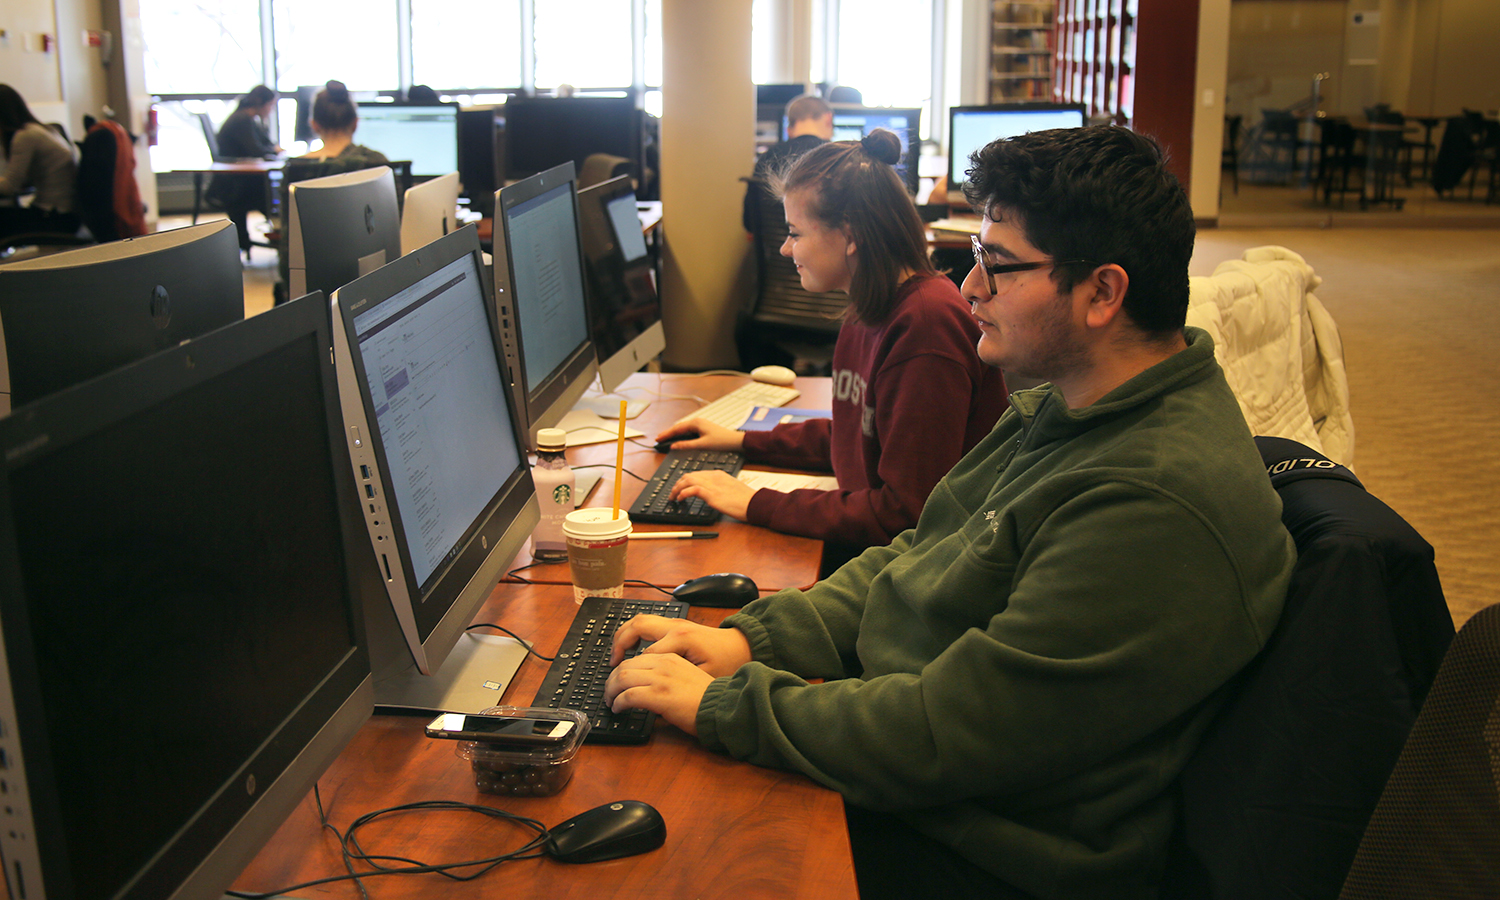 Kevin Cervantes 'X and Christina Hunter 'X works on an assignment in the Rosensweig Learning Commons in Warren Hunting Smith Library.